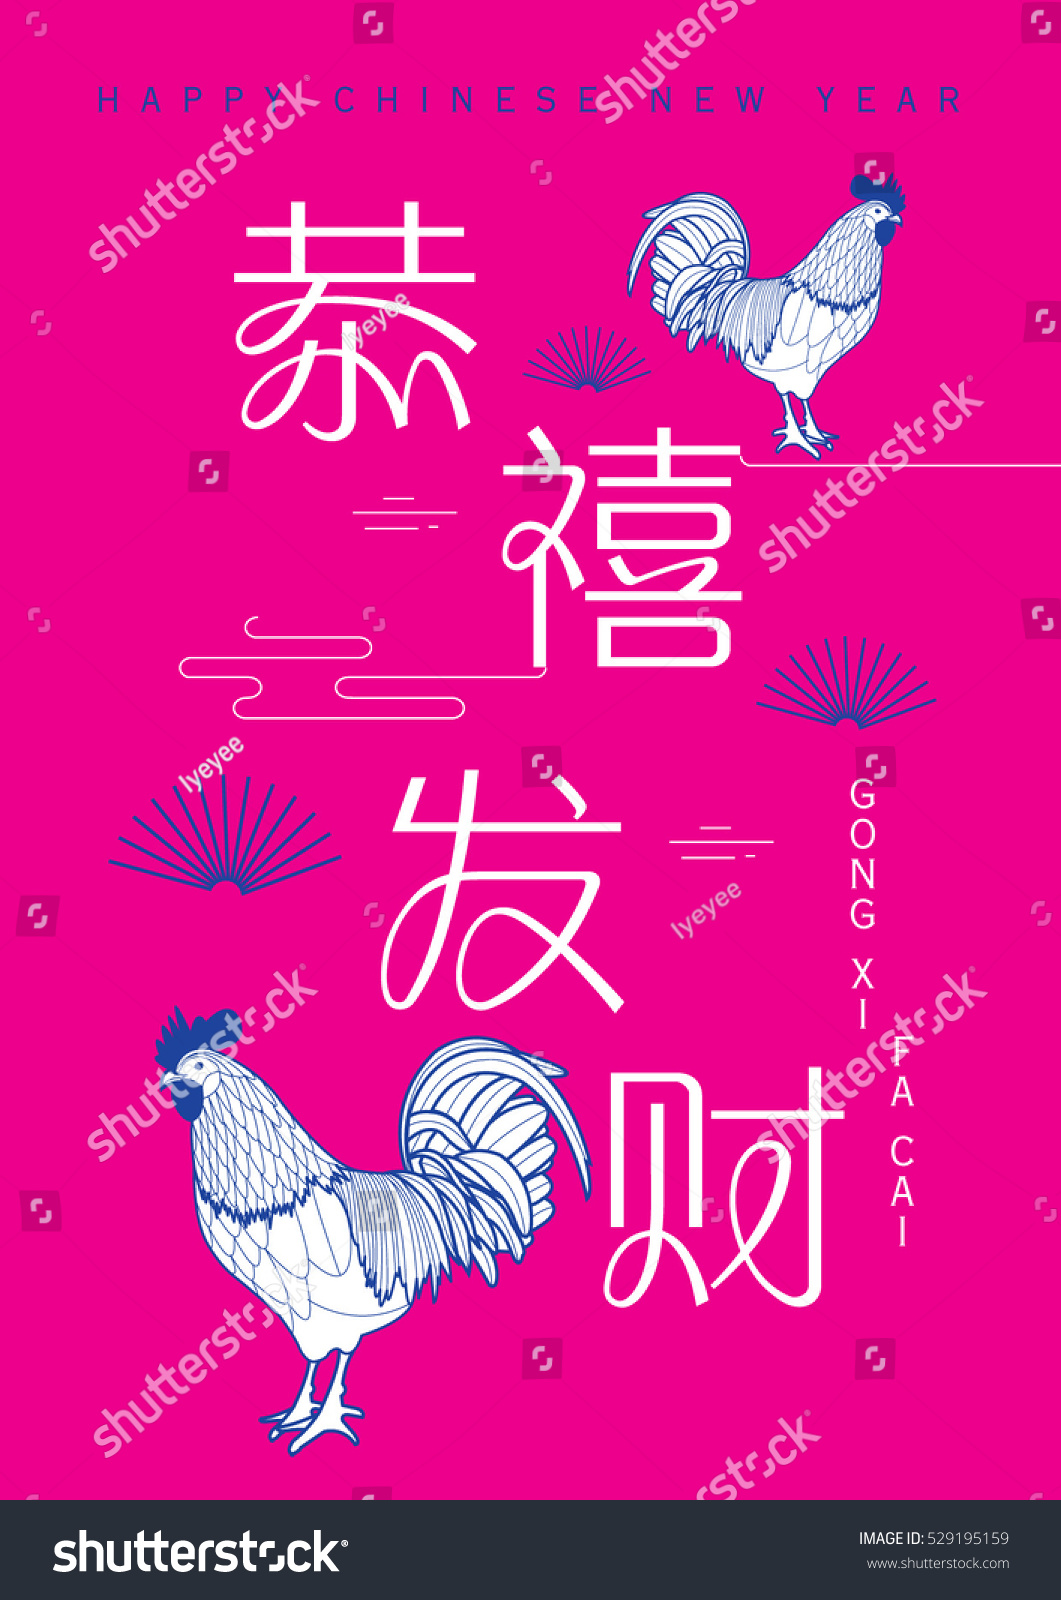 chinese new year of the rooster greetings template vectorillustration chinese character that means wishing you prosperity ez canvas